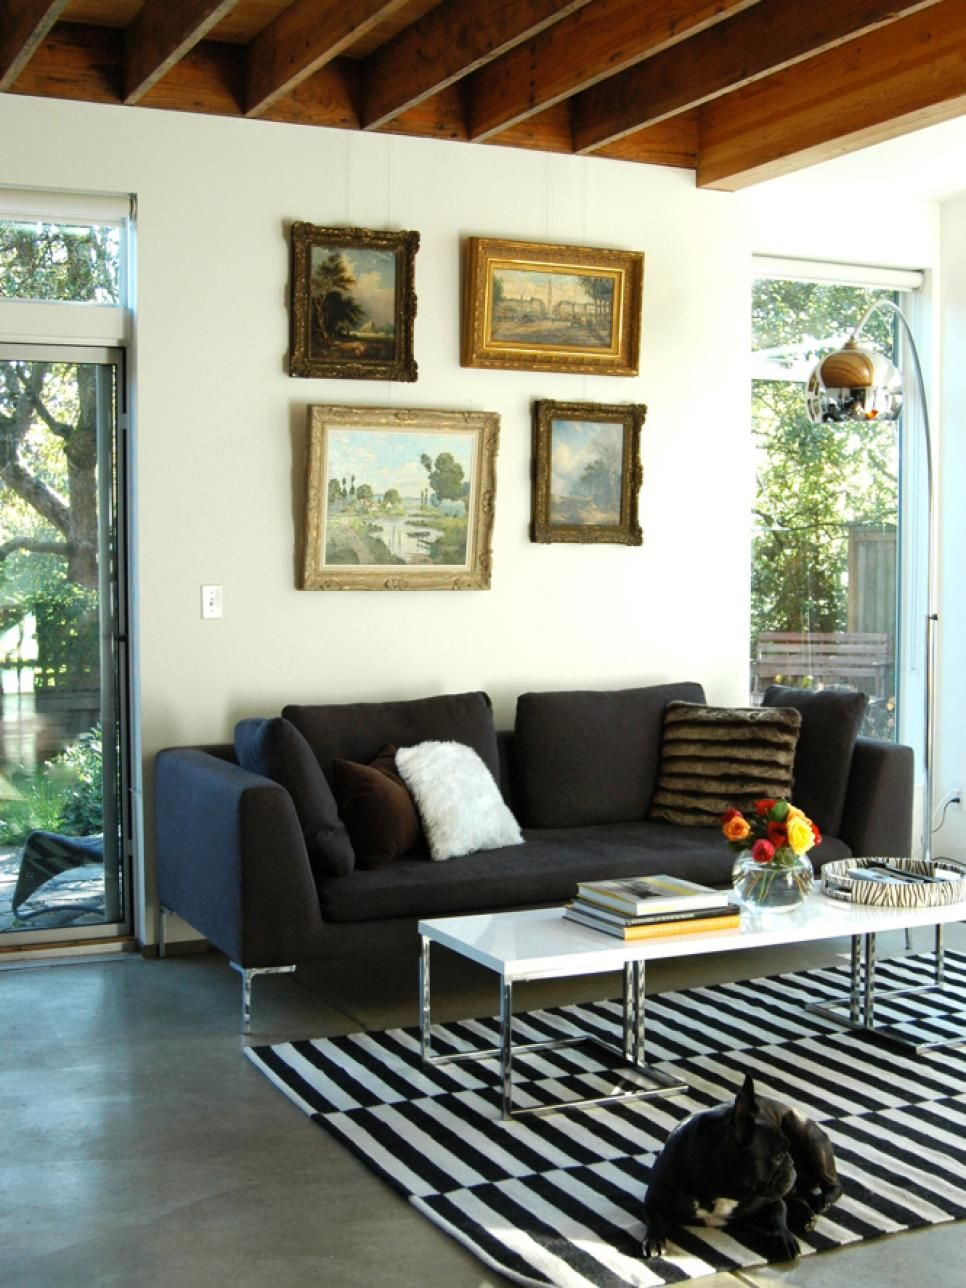 Ecelctic home decor and decorating ideas